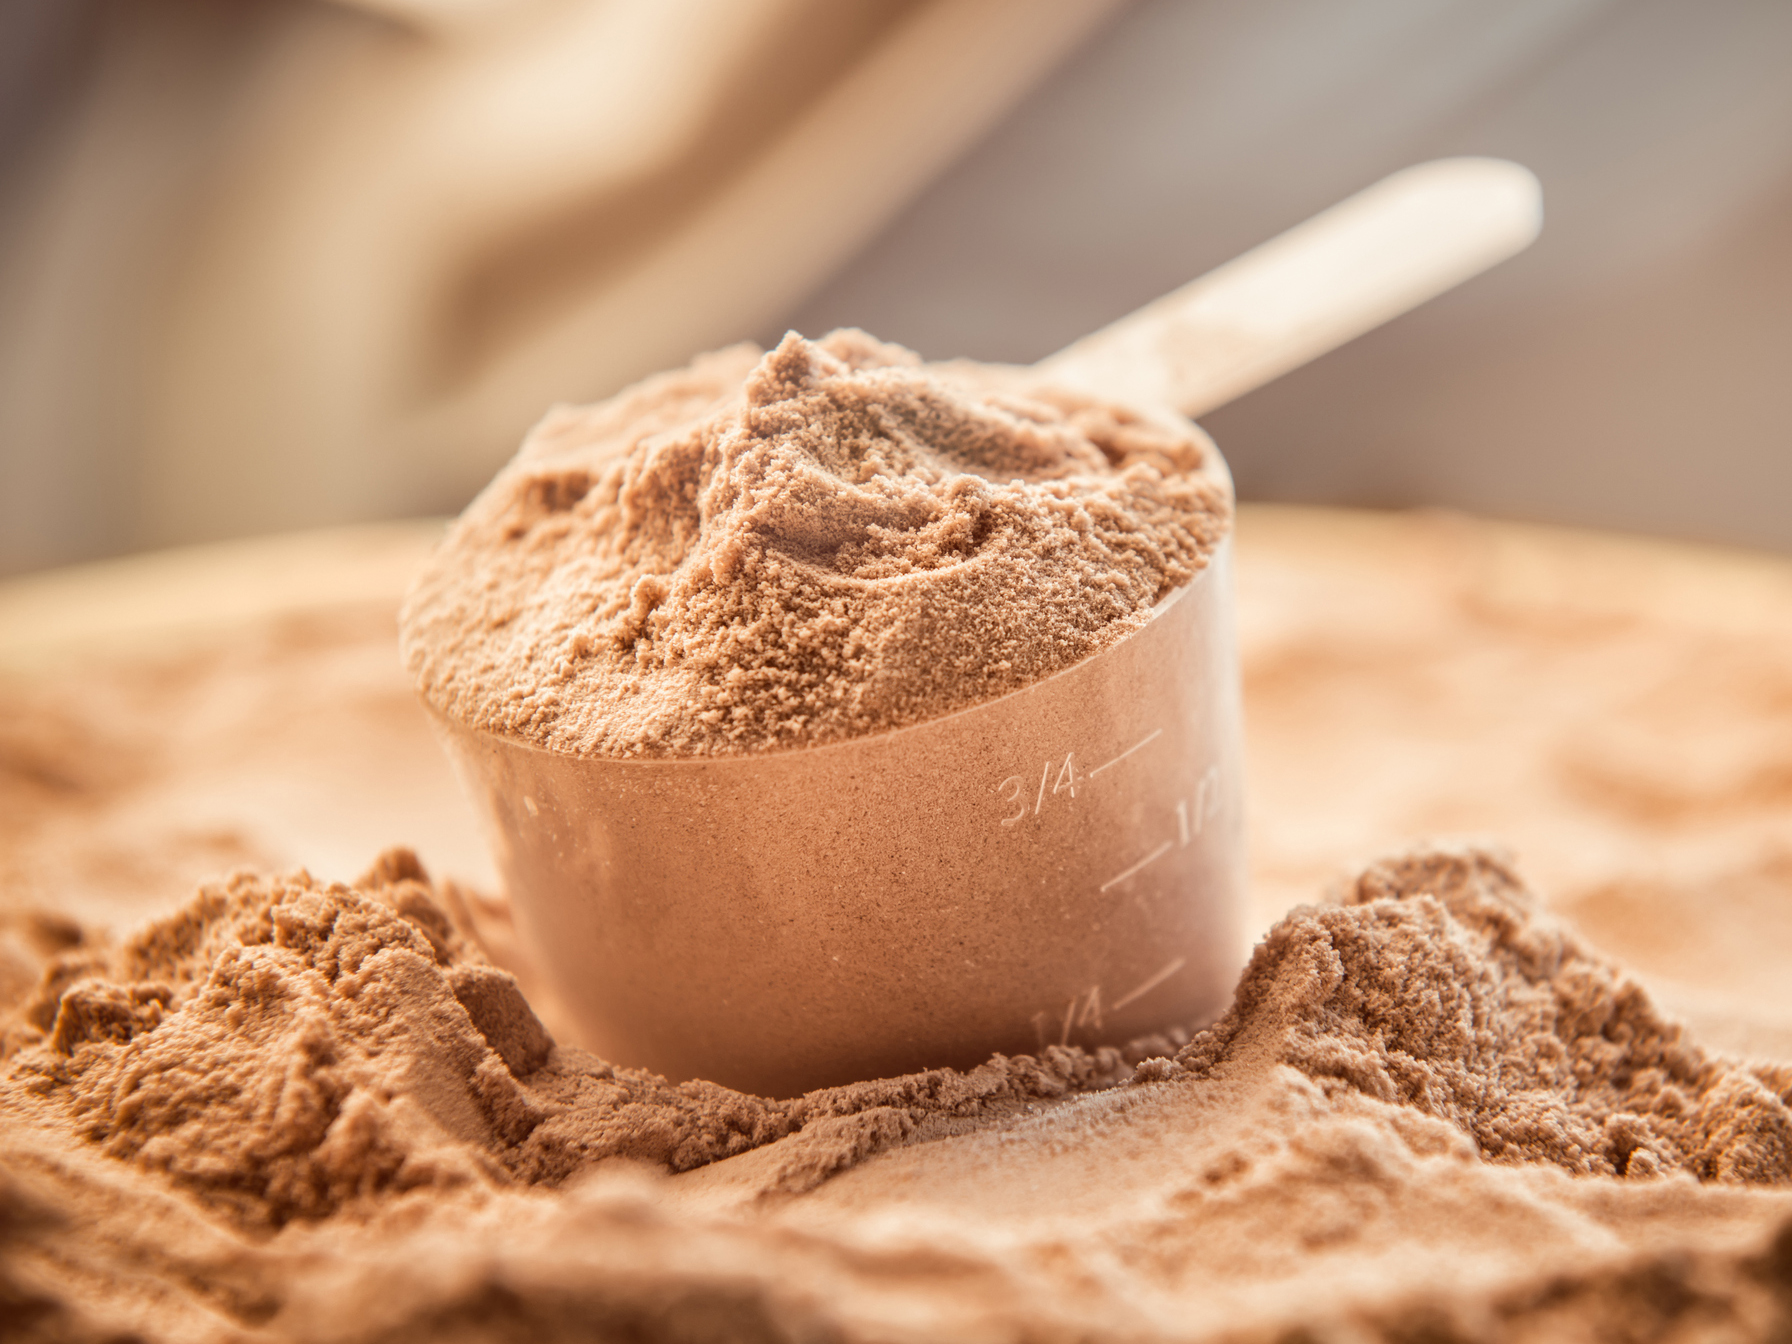 13 Easy Ways To Get More Protein In Your Diet